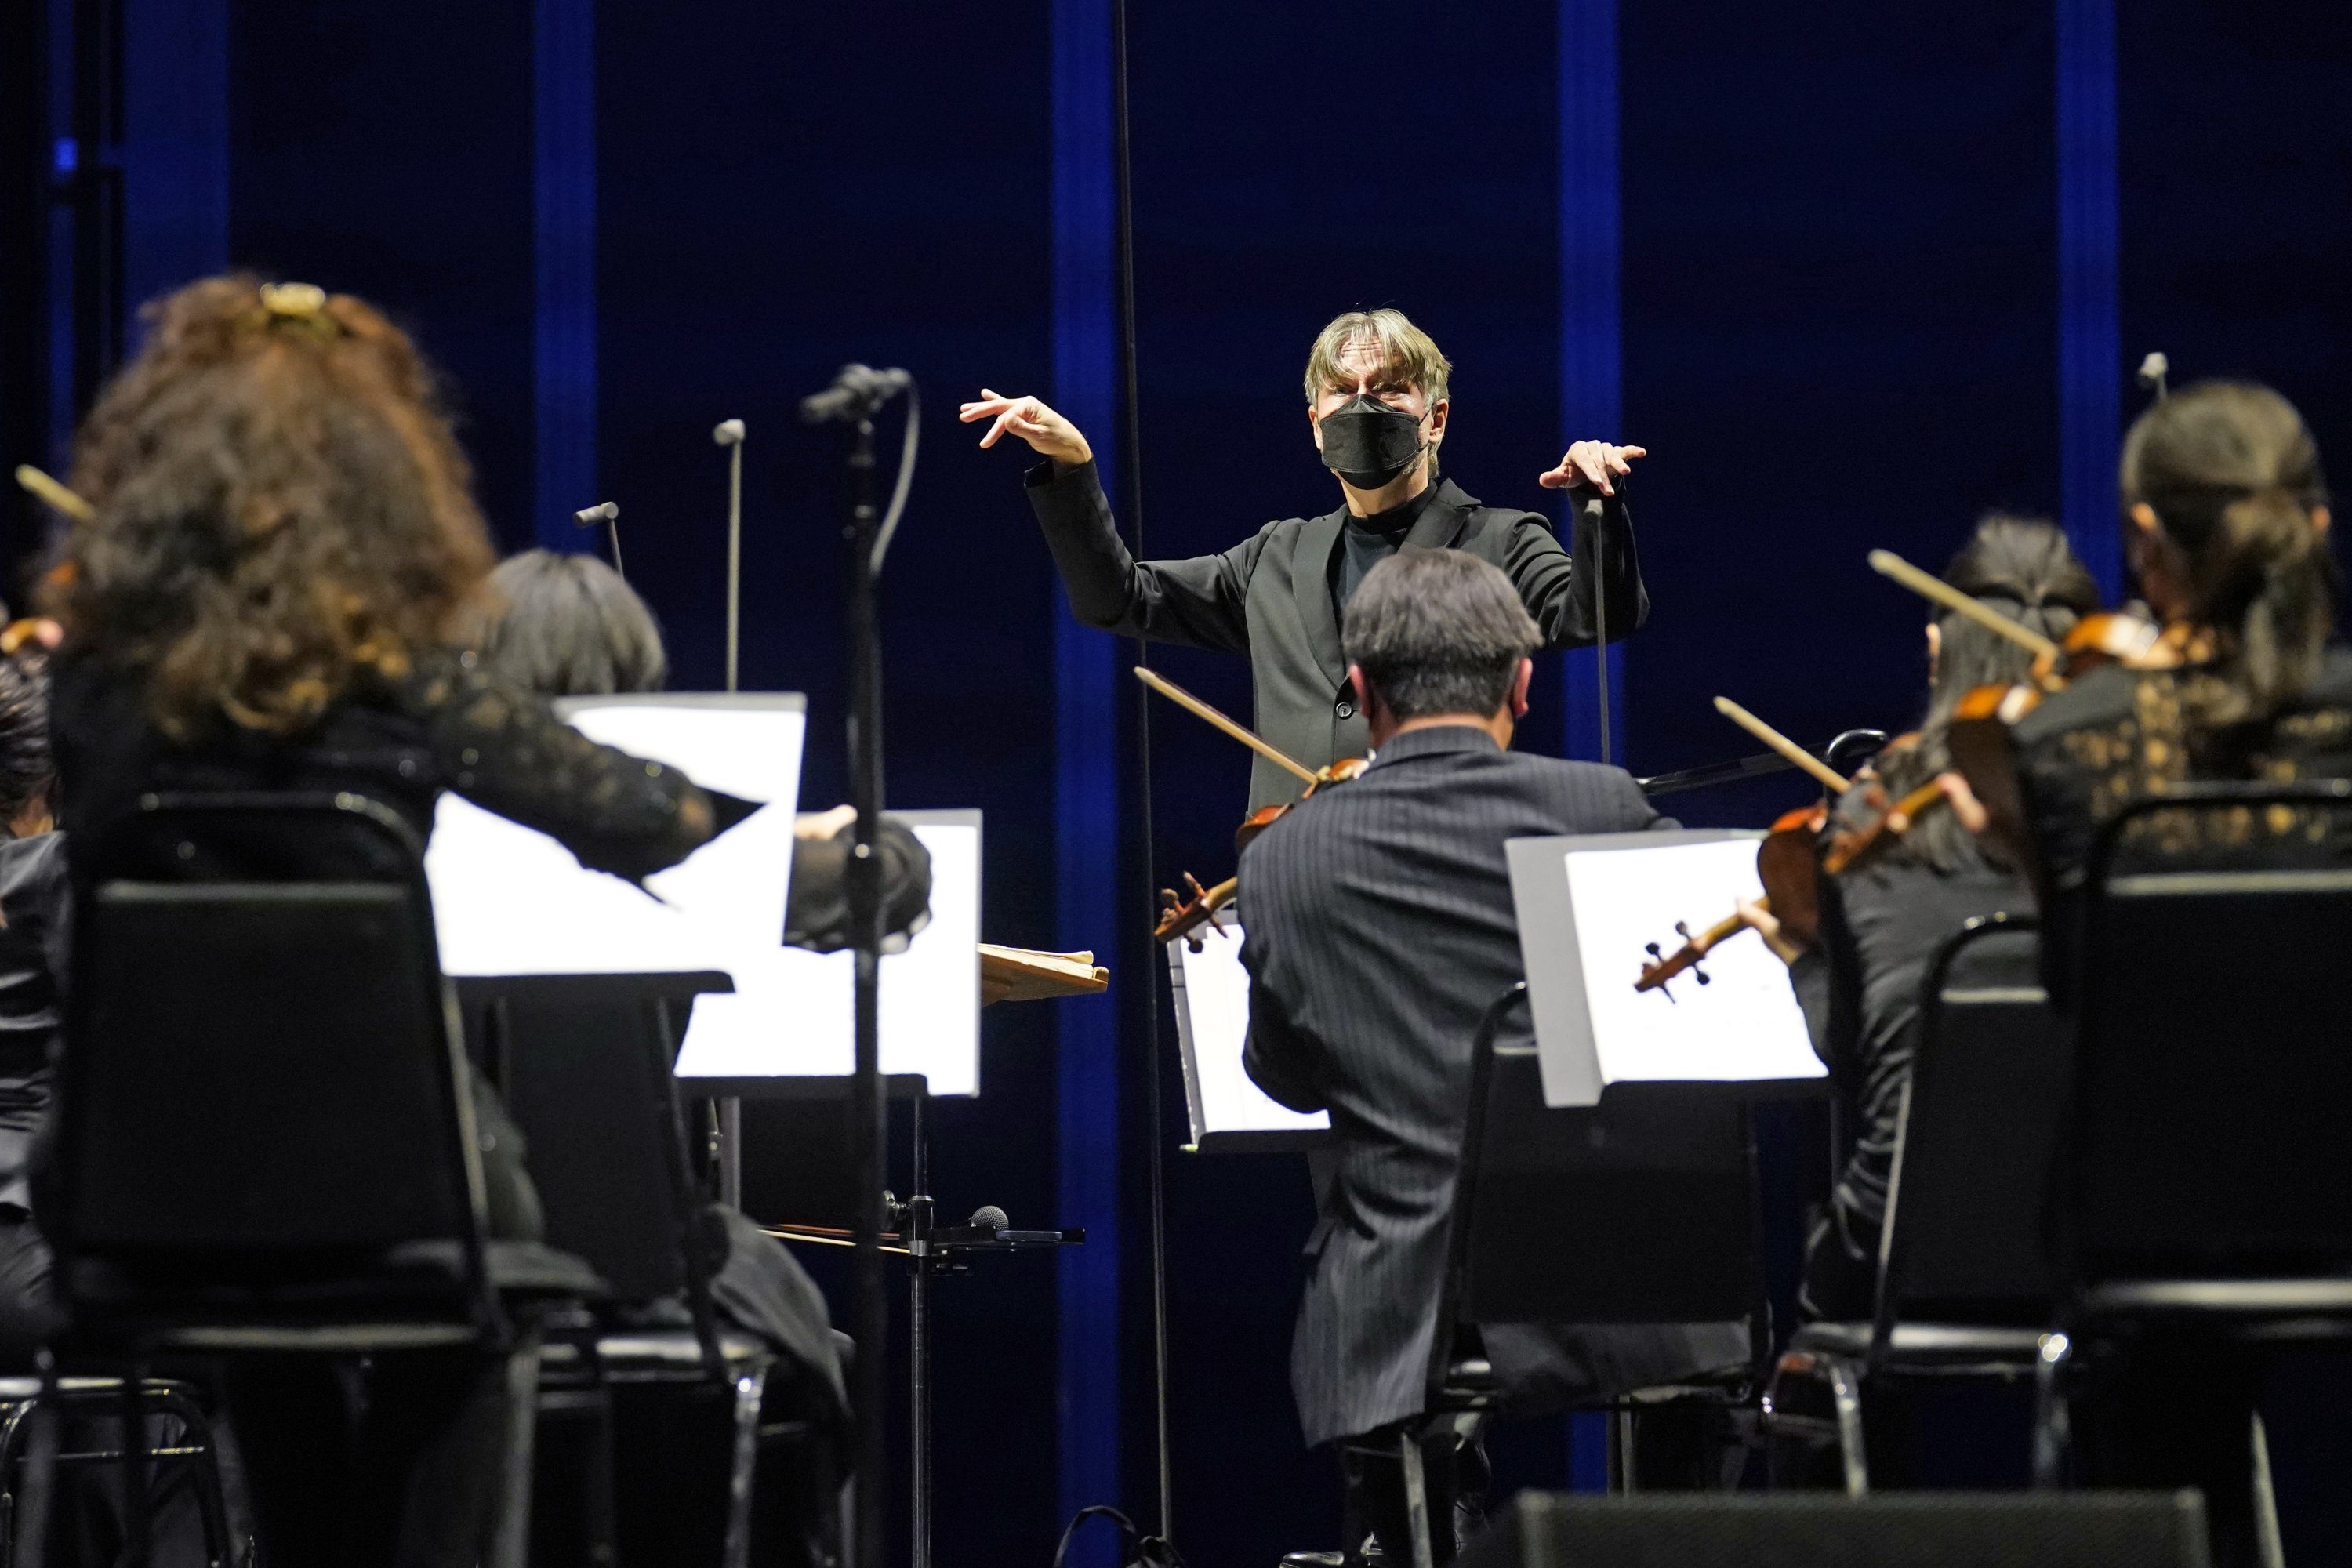 Guest conductor Essa-Pekka Salonen leads the New York Philharmonic as the orchestra perform together before a live audience of 150 spectators for the first time since March 10, 2020, at The Shed in Hudson Yards, New York, U.S., Wednesday, April 14, 2021. (AP Photo)